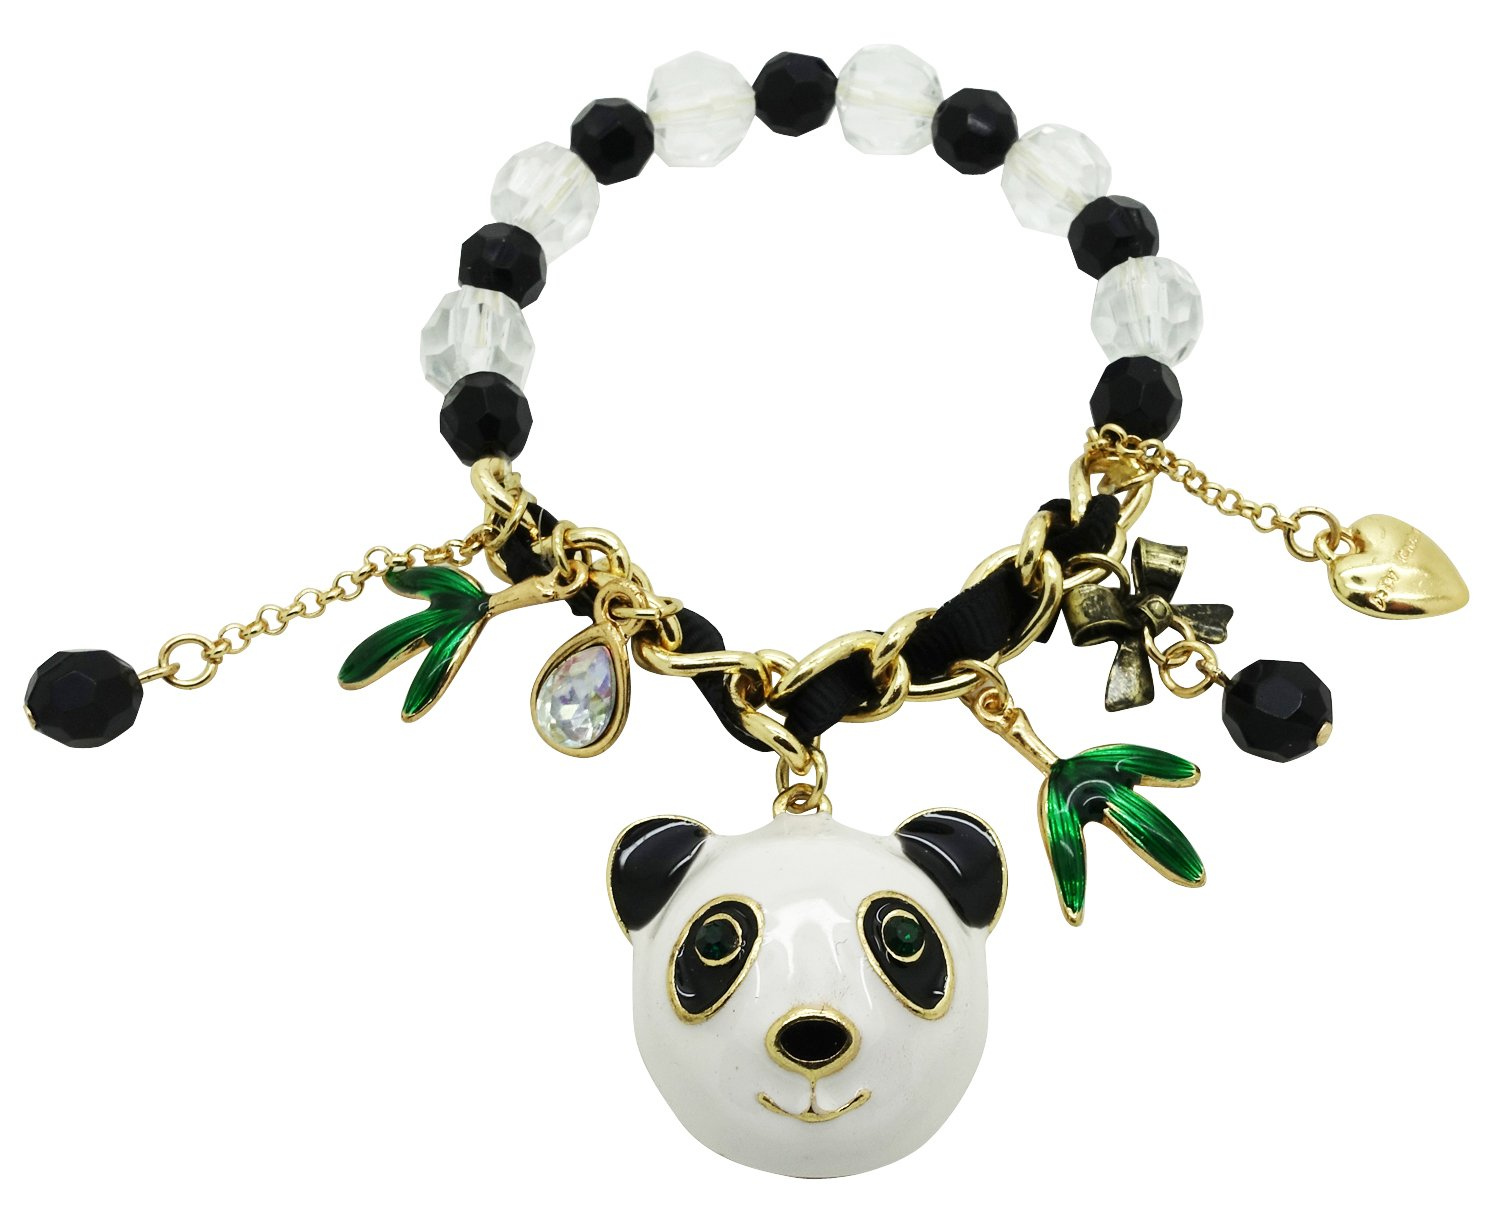 PANDA BEAR BEAD JEWELLERY MAKING